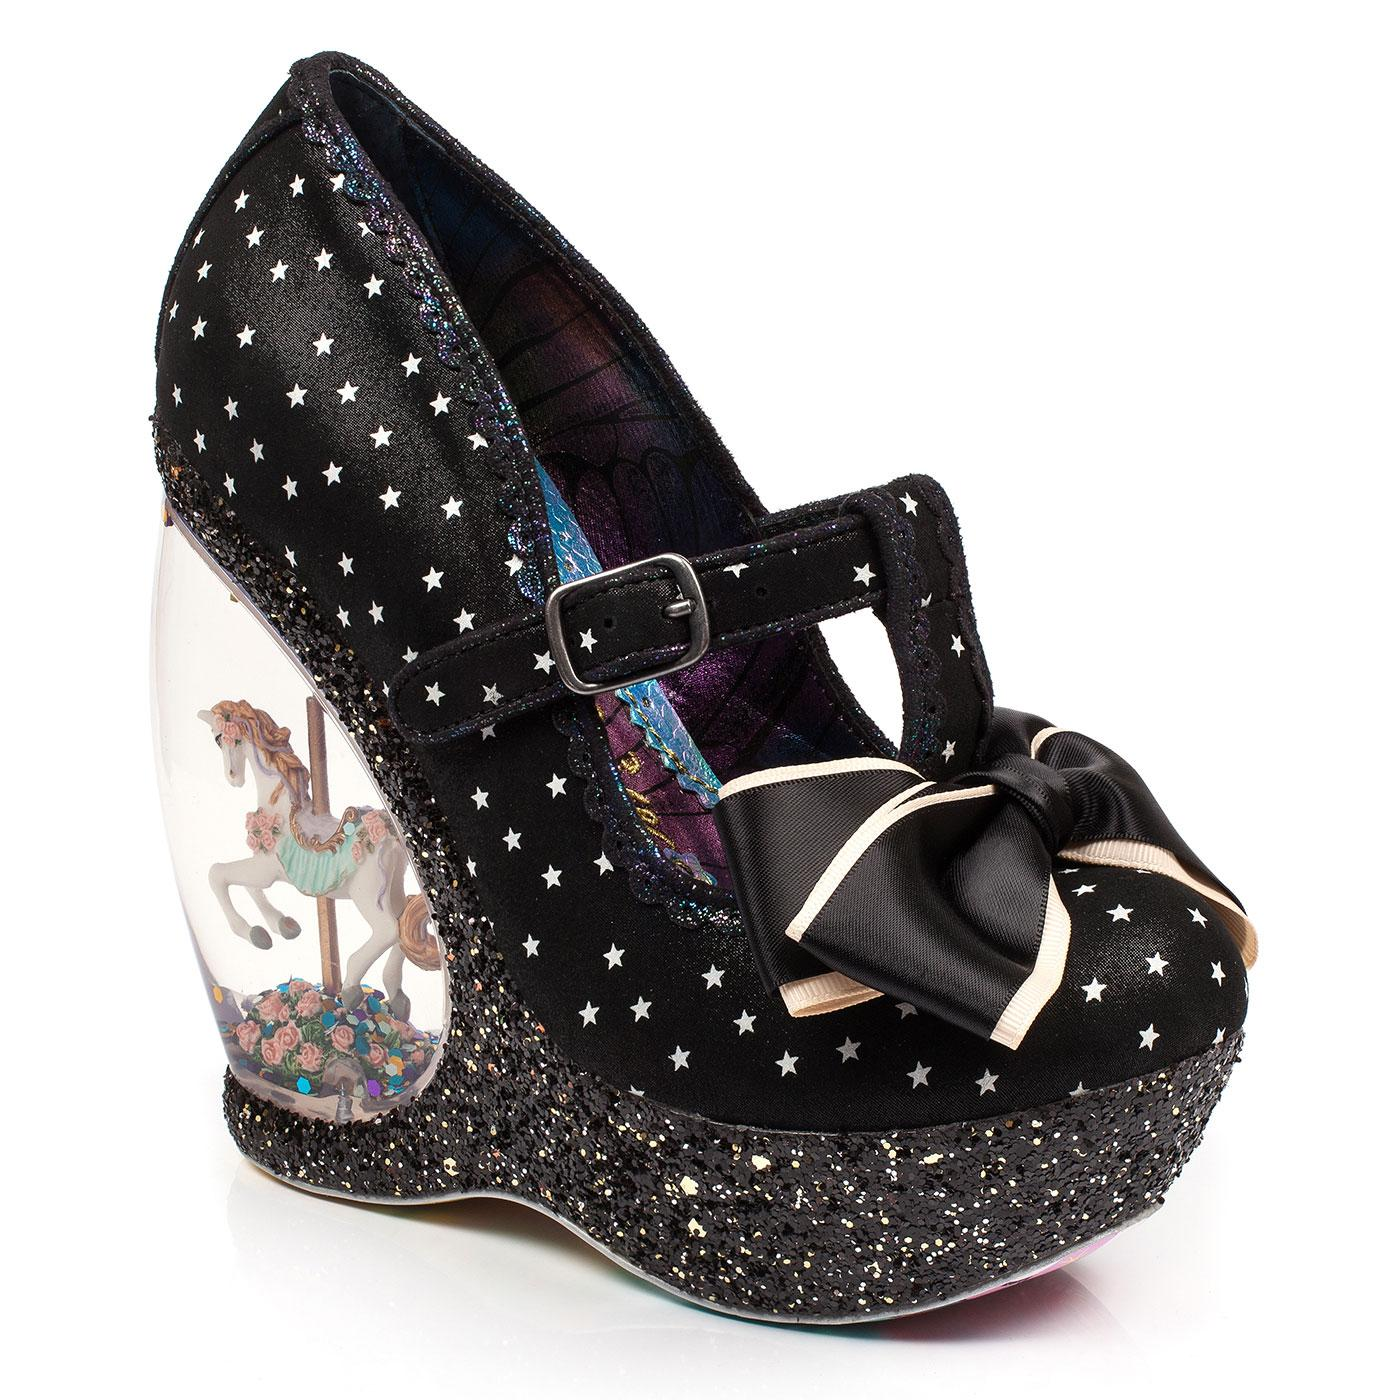 Chestnut IRREGULAR CHOICE Retro Carousel Wedges Black